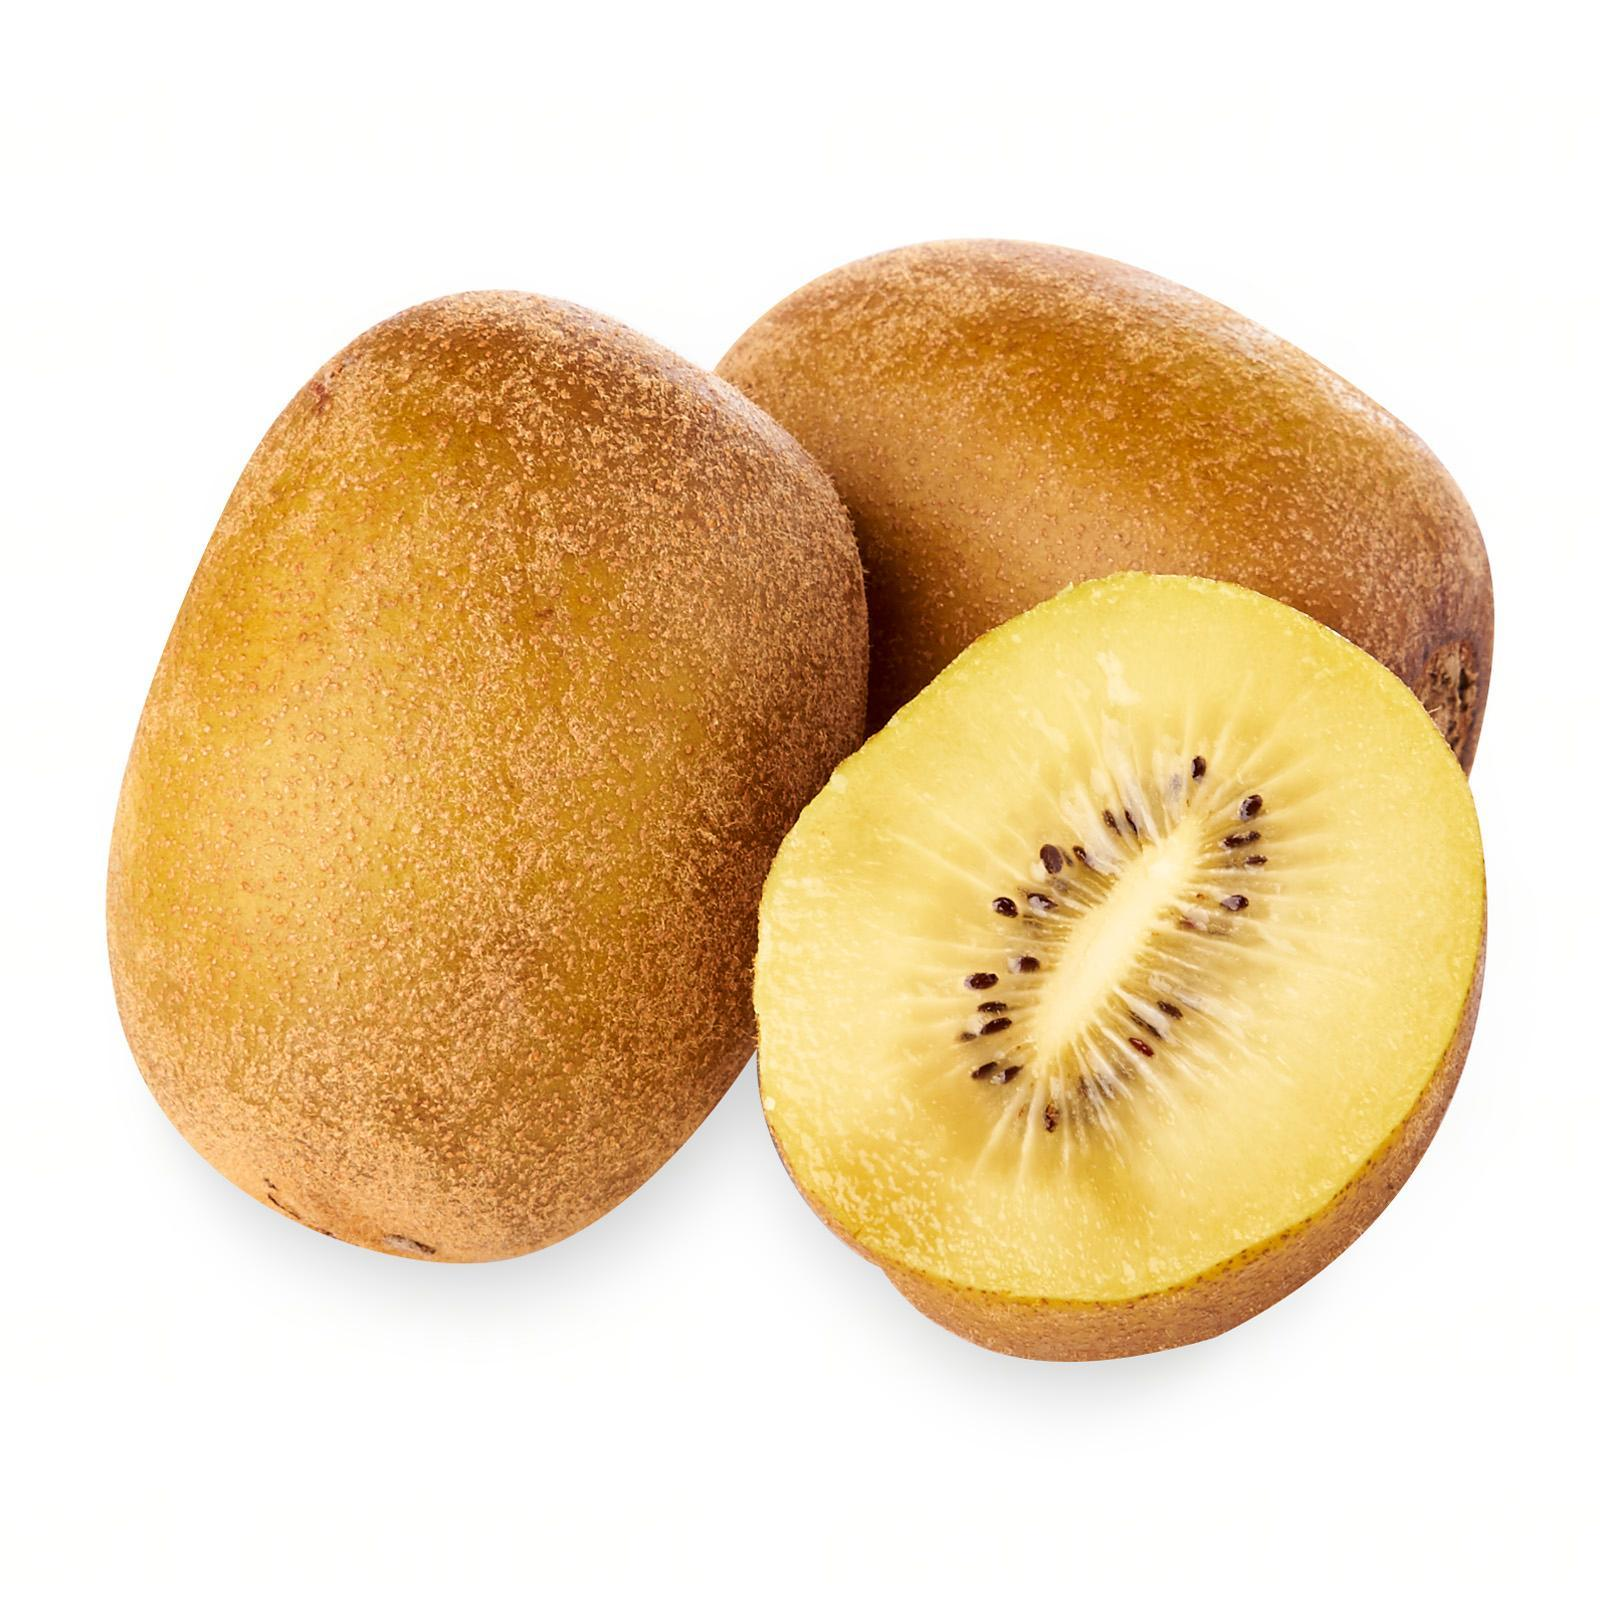 Zespri Sungold 3s Golden Kiwi By Redmart.